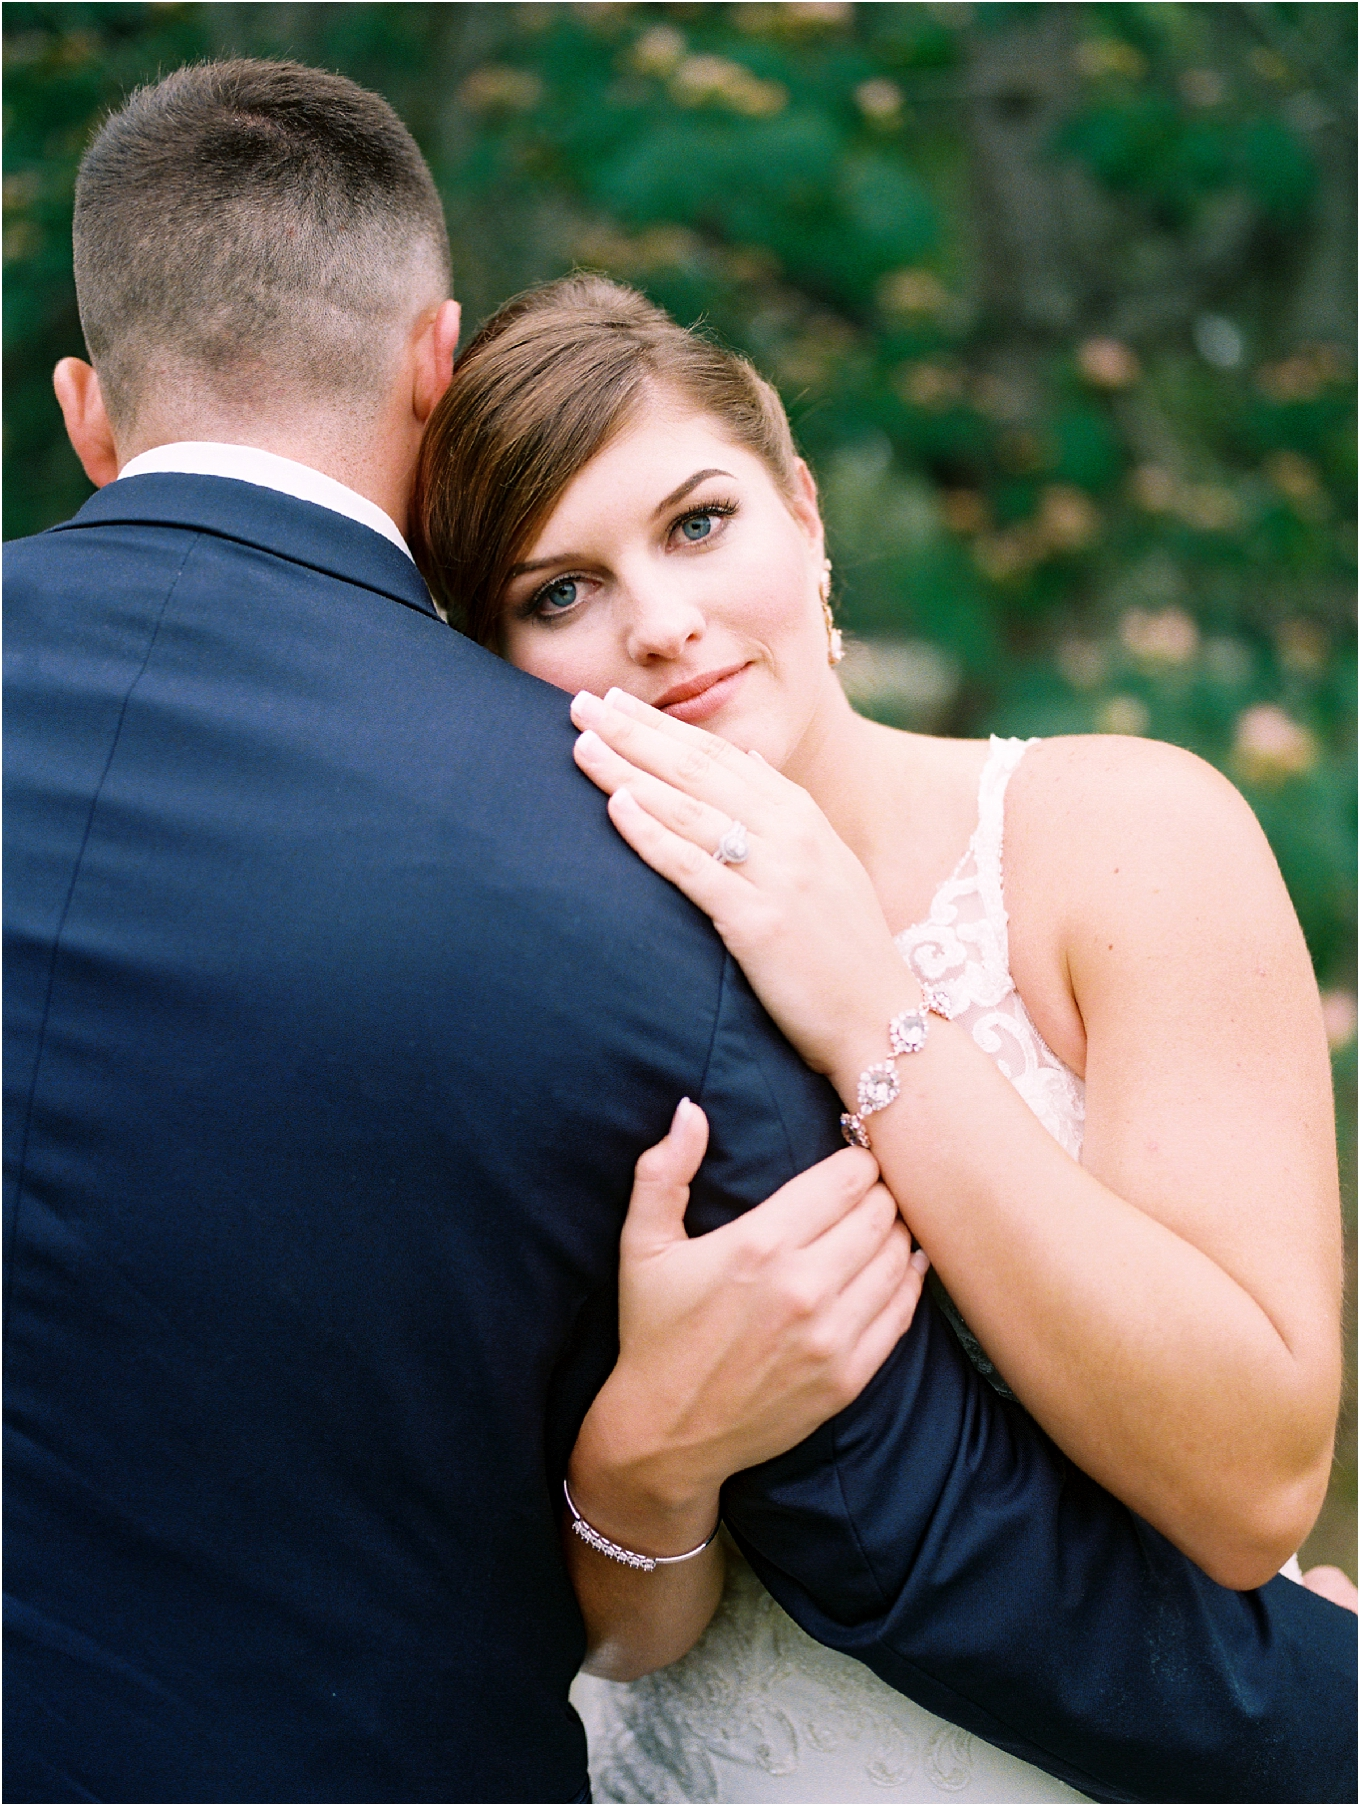 Lisa Silva Photography- Ponte Vedra Beach, St. Augustine and Jacksonville, Florida Fine Art Film Wedding and Boudoir Photography- Elegant Blush and Navy Wedding at Chandler Oaks Barn in St. Augustine, Florida_0079.jpg